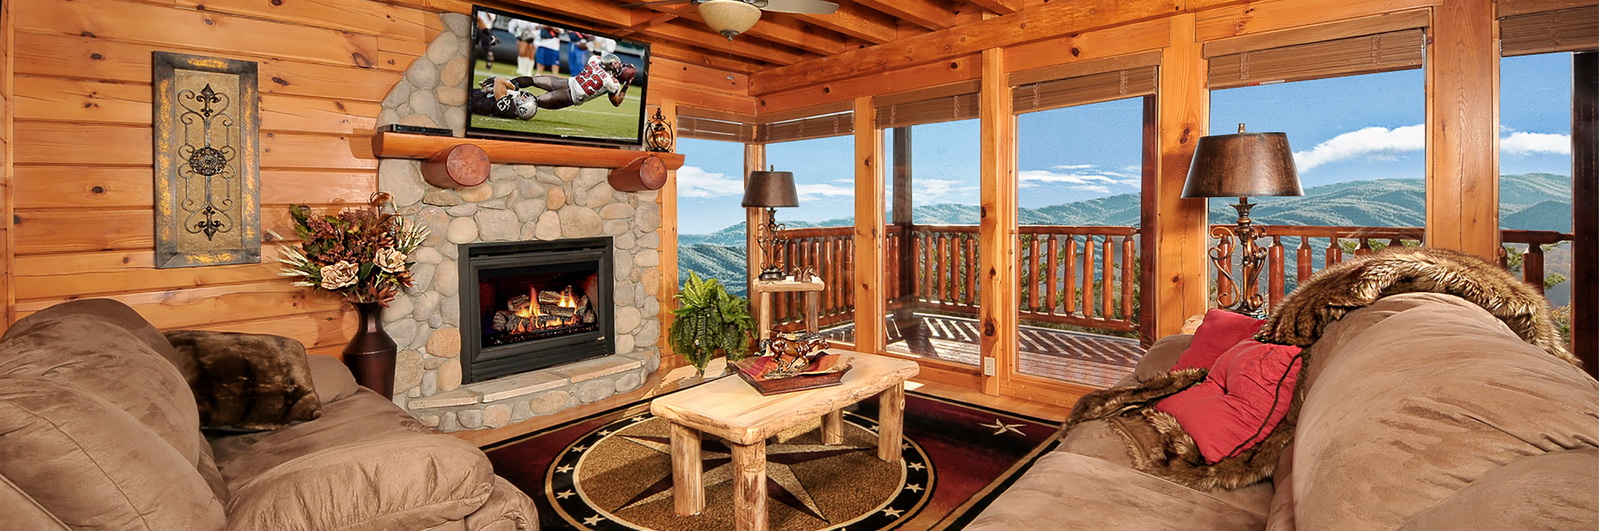 smokies cheap for apartments hotels rentals honeymoons gatlinburg gatlburg cabins the tn interior in affordable